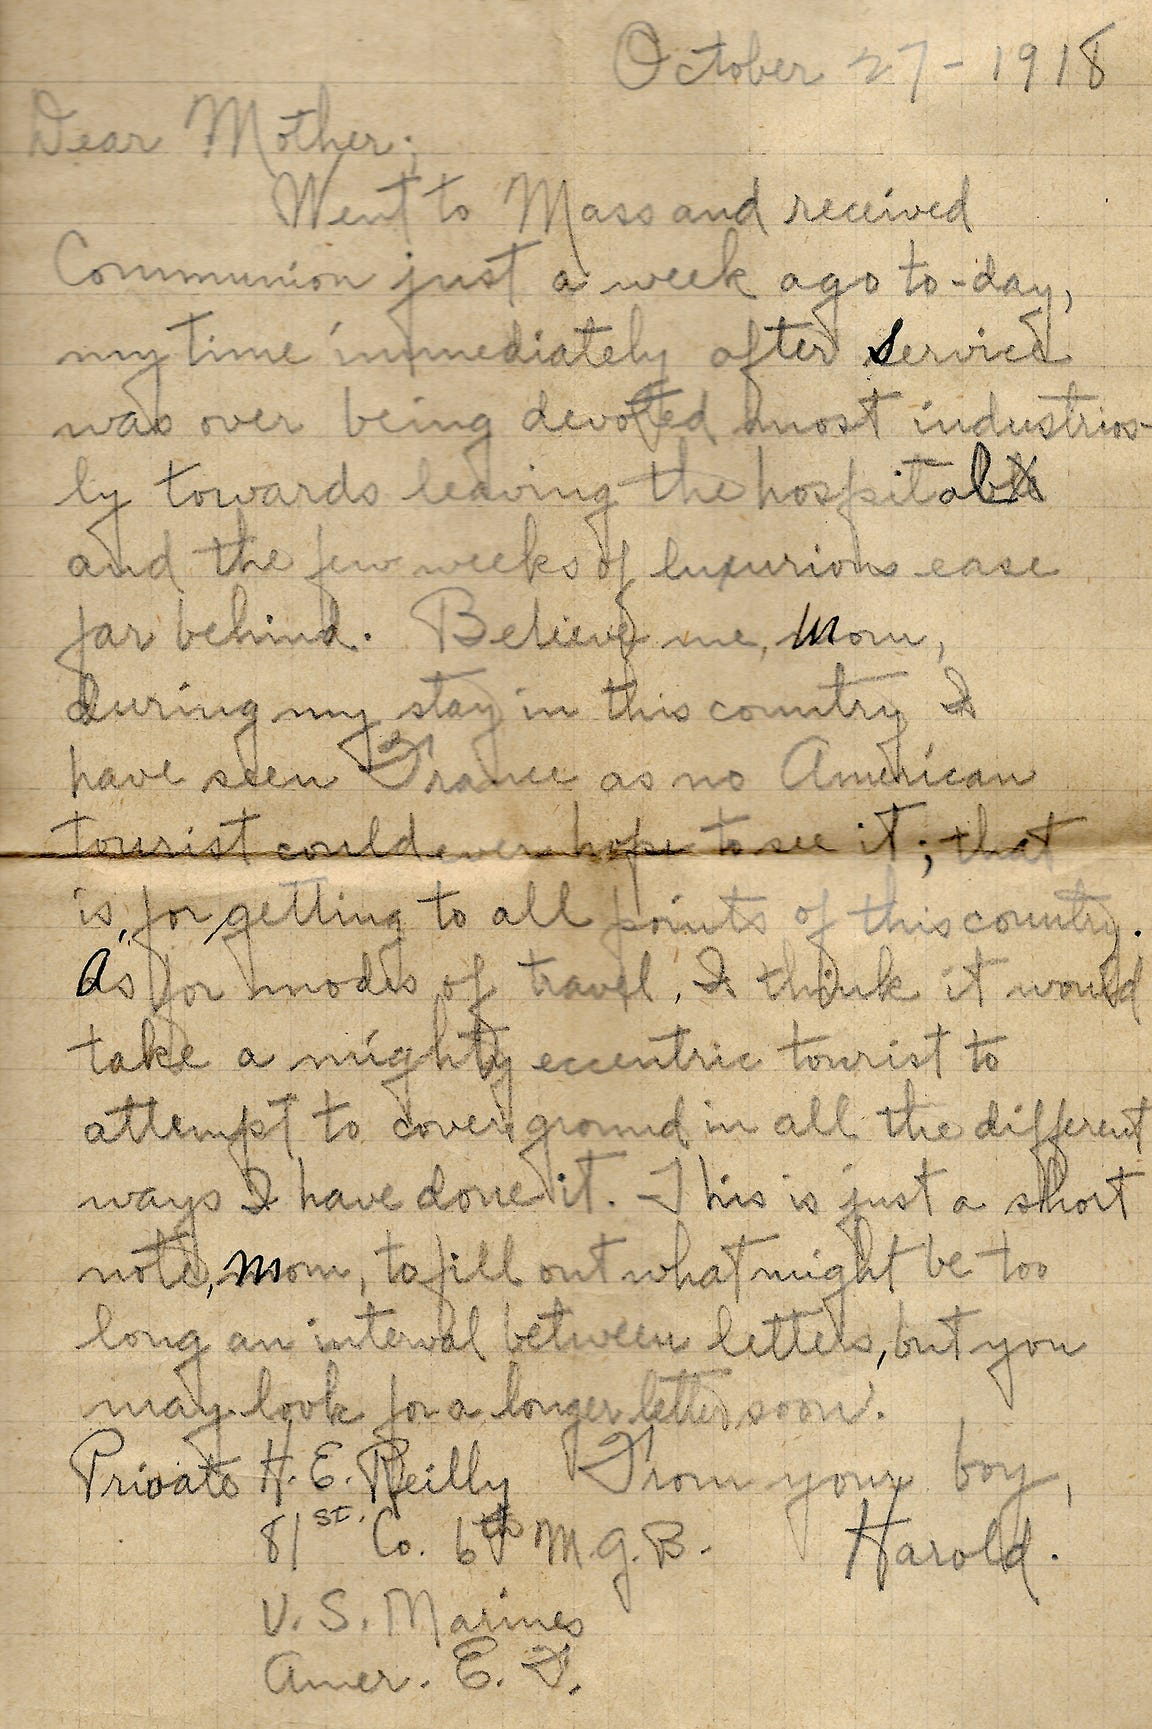 In an Oct. 27, 1918 letter, Harold Reilly wrote he was preparing to leave the hospital and return to his unit, and promised to write a longer letter later. Reilly left Marquette University in May 1917 to enlist in the U.S. Marines where he was assigned to the 81st Co., 6th Machine Gun Battalion. His unit arrived in France on Dec. 28, 1917.